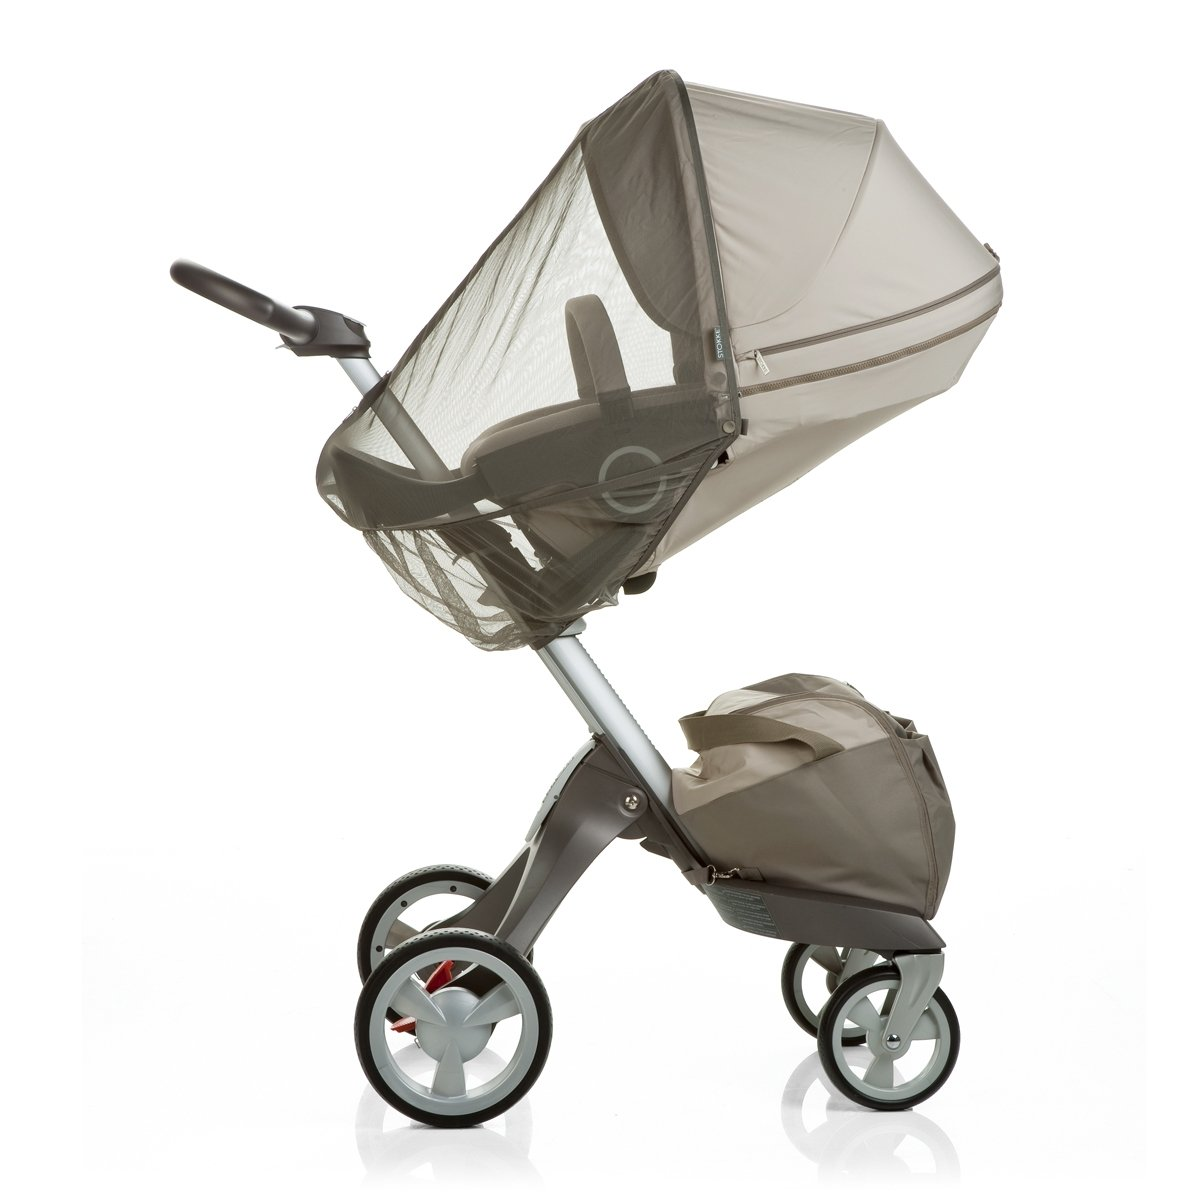 Stokke Stroller Xplory / Crusi Seat Mosquito Net